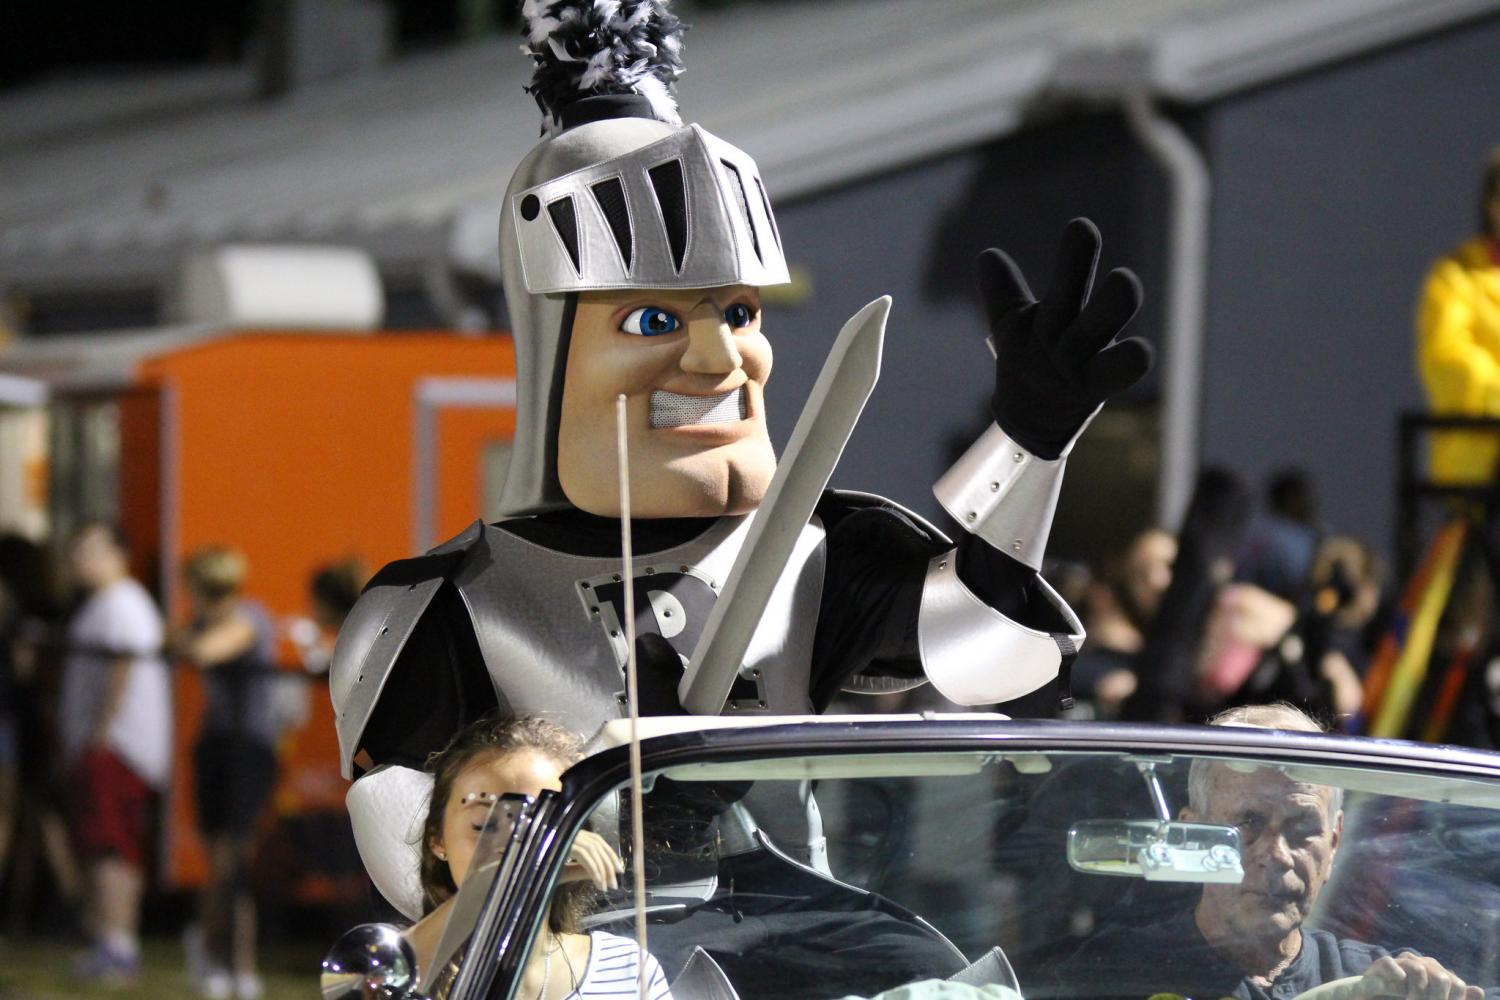 The Knight mascot rides in a convertible during the court presentation at the 2016 homecoming game. After the school district decides to cancel school, due to hurricane threat, administration reschedules homecoming festivities.